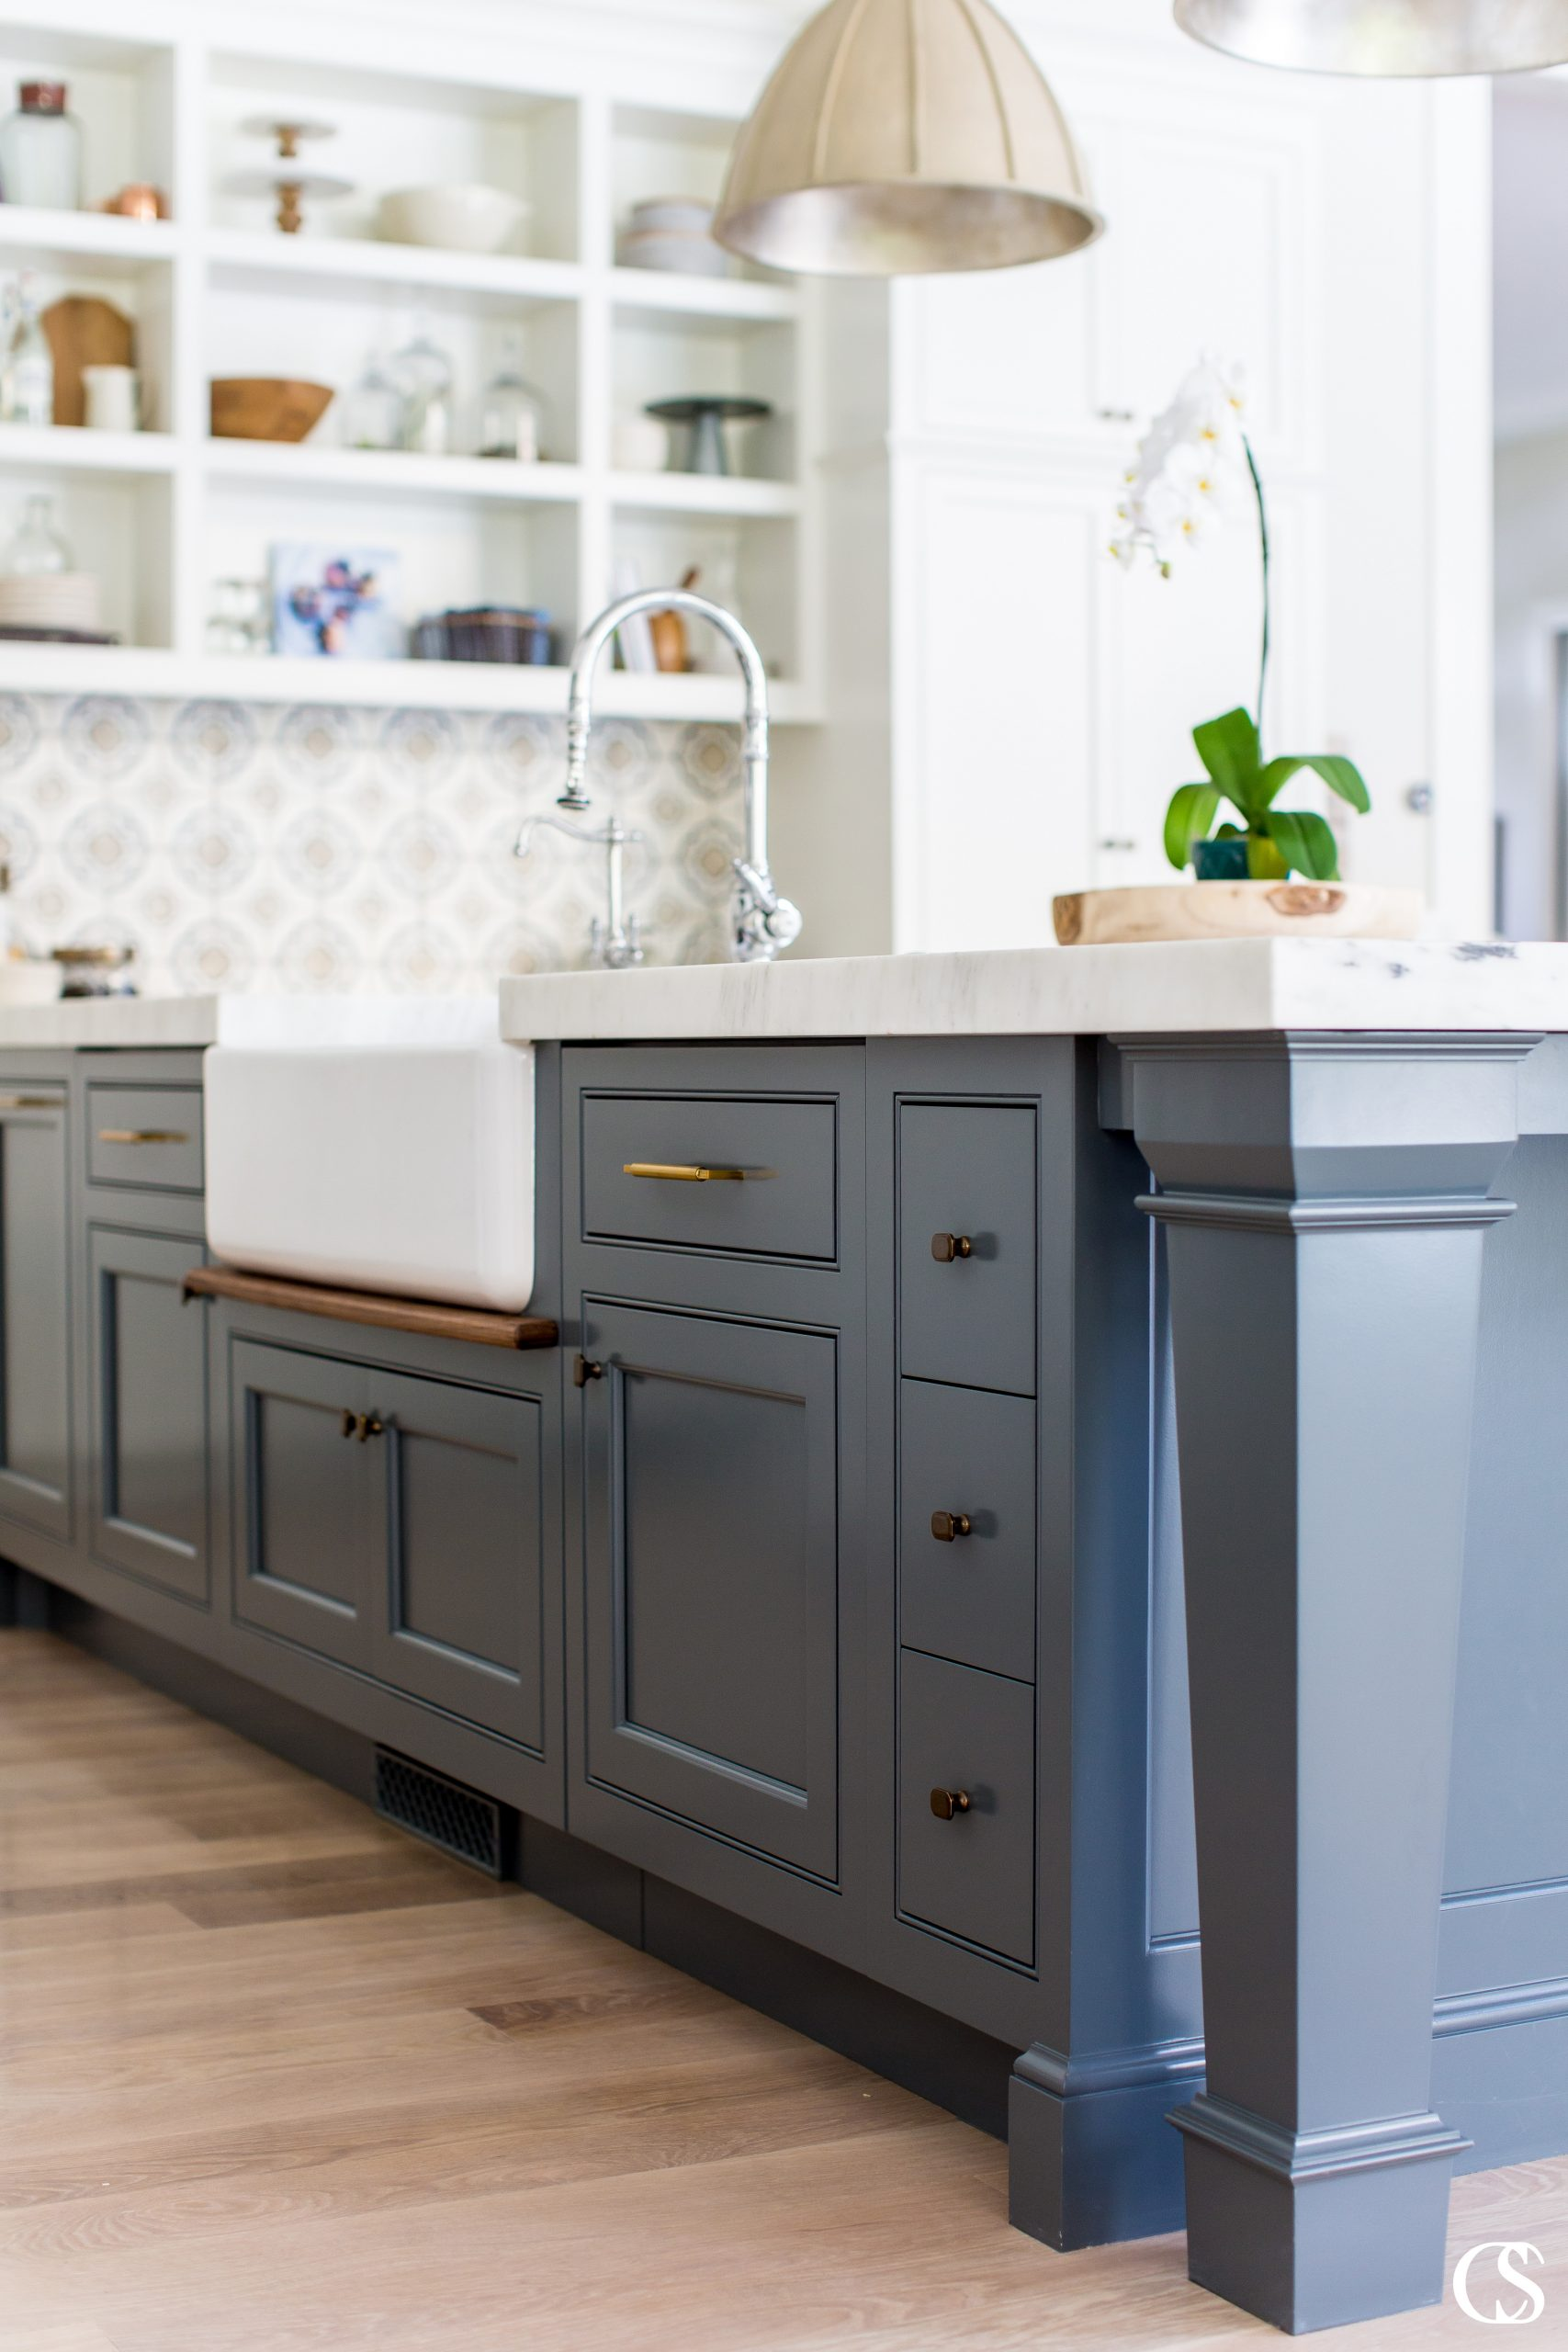 It's amazing how some open kitchen shelves can balance the weight of this blue kitchen island design. It almost creates an anchor for the room so great kitchen lighting and custom wall tile can really pop.